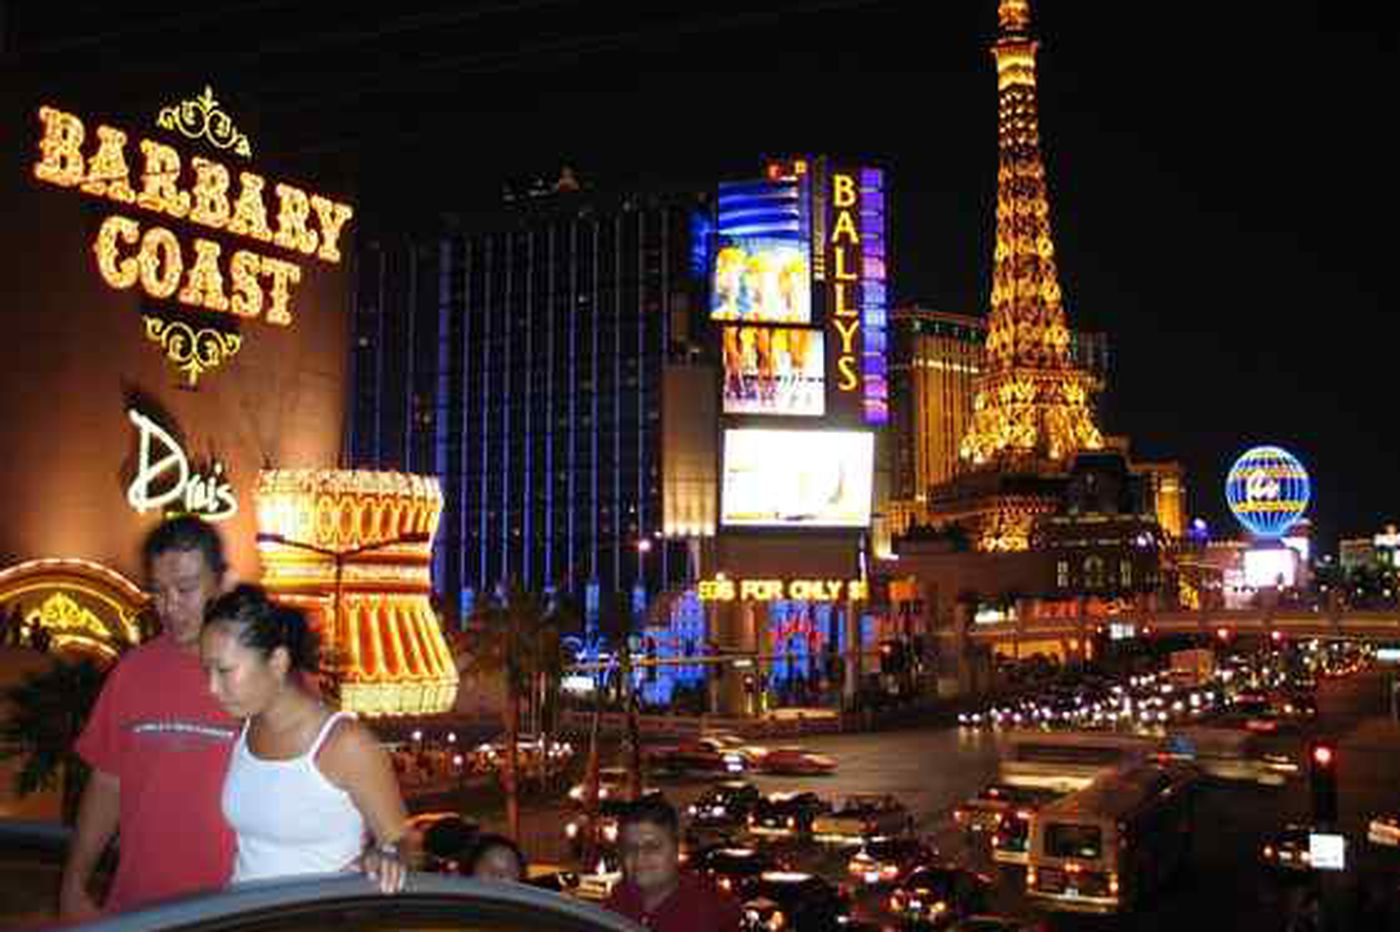 Vegas on losing end of rough economy